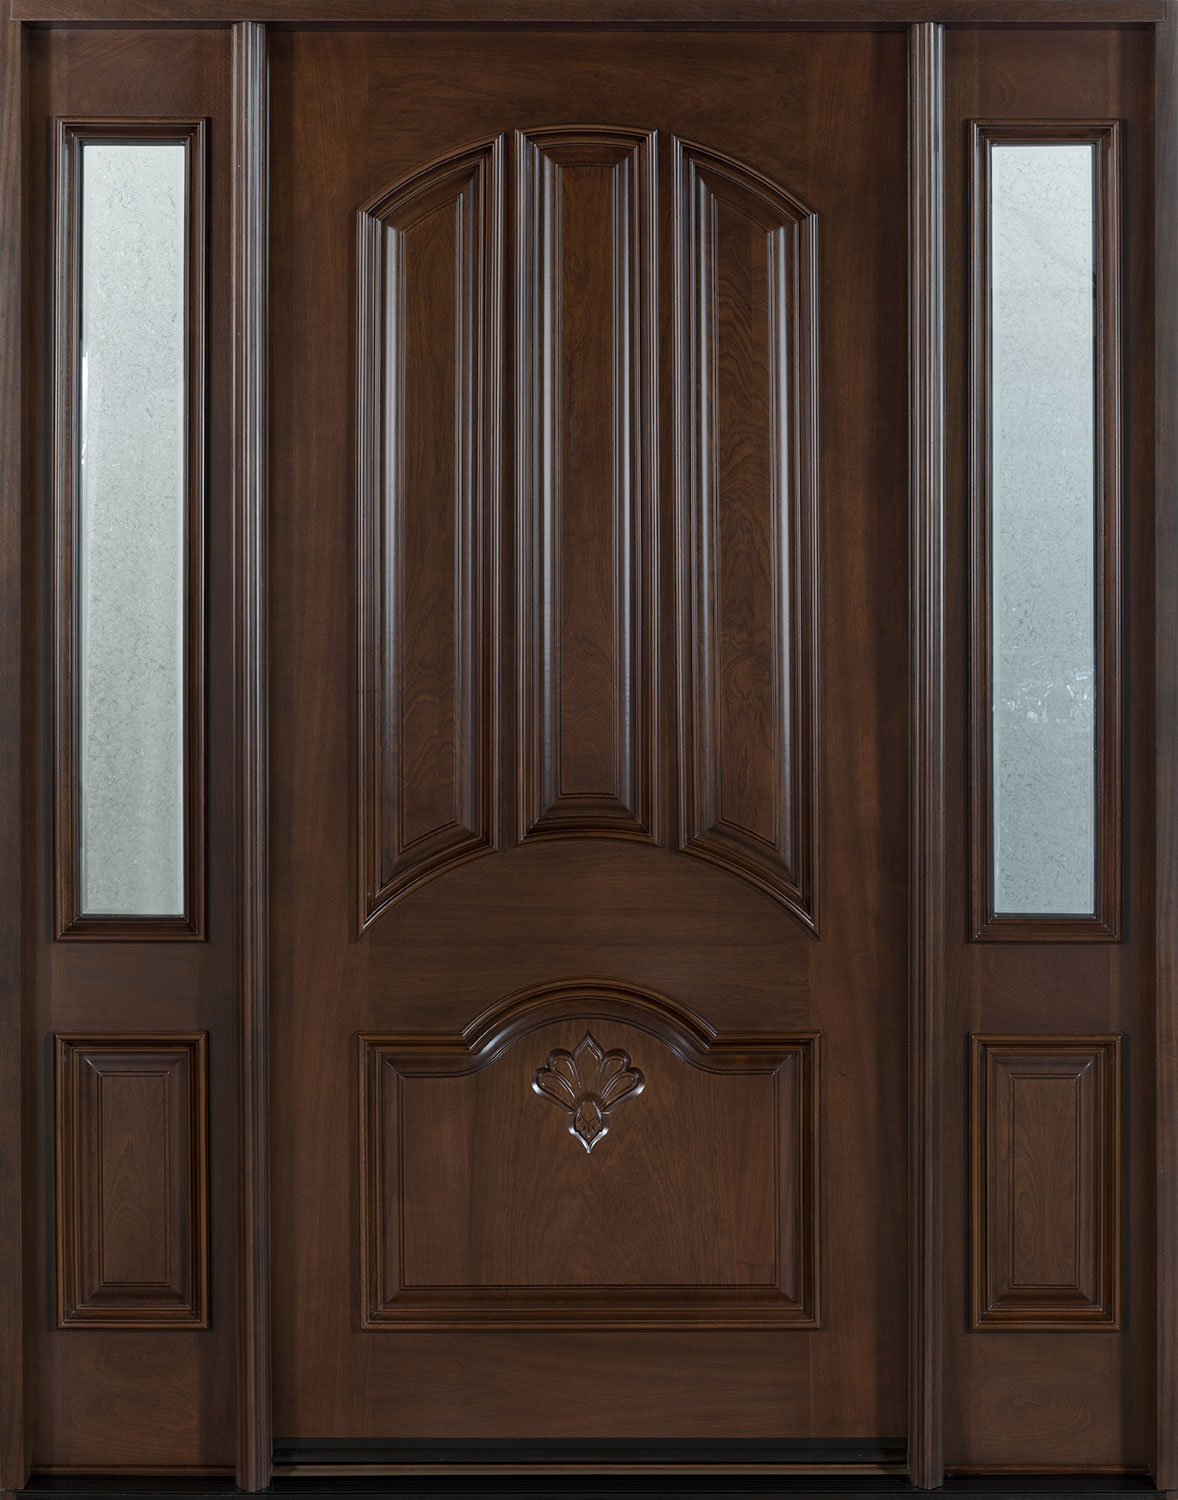 door design ideas 3 - Doors Design For Home